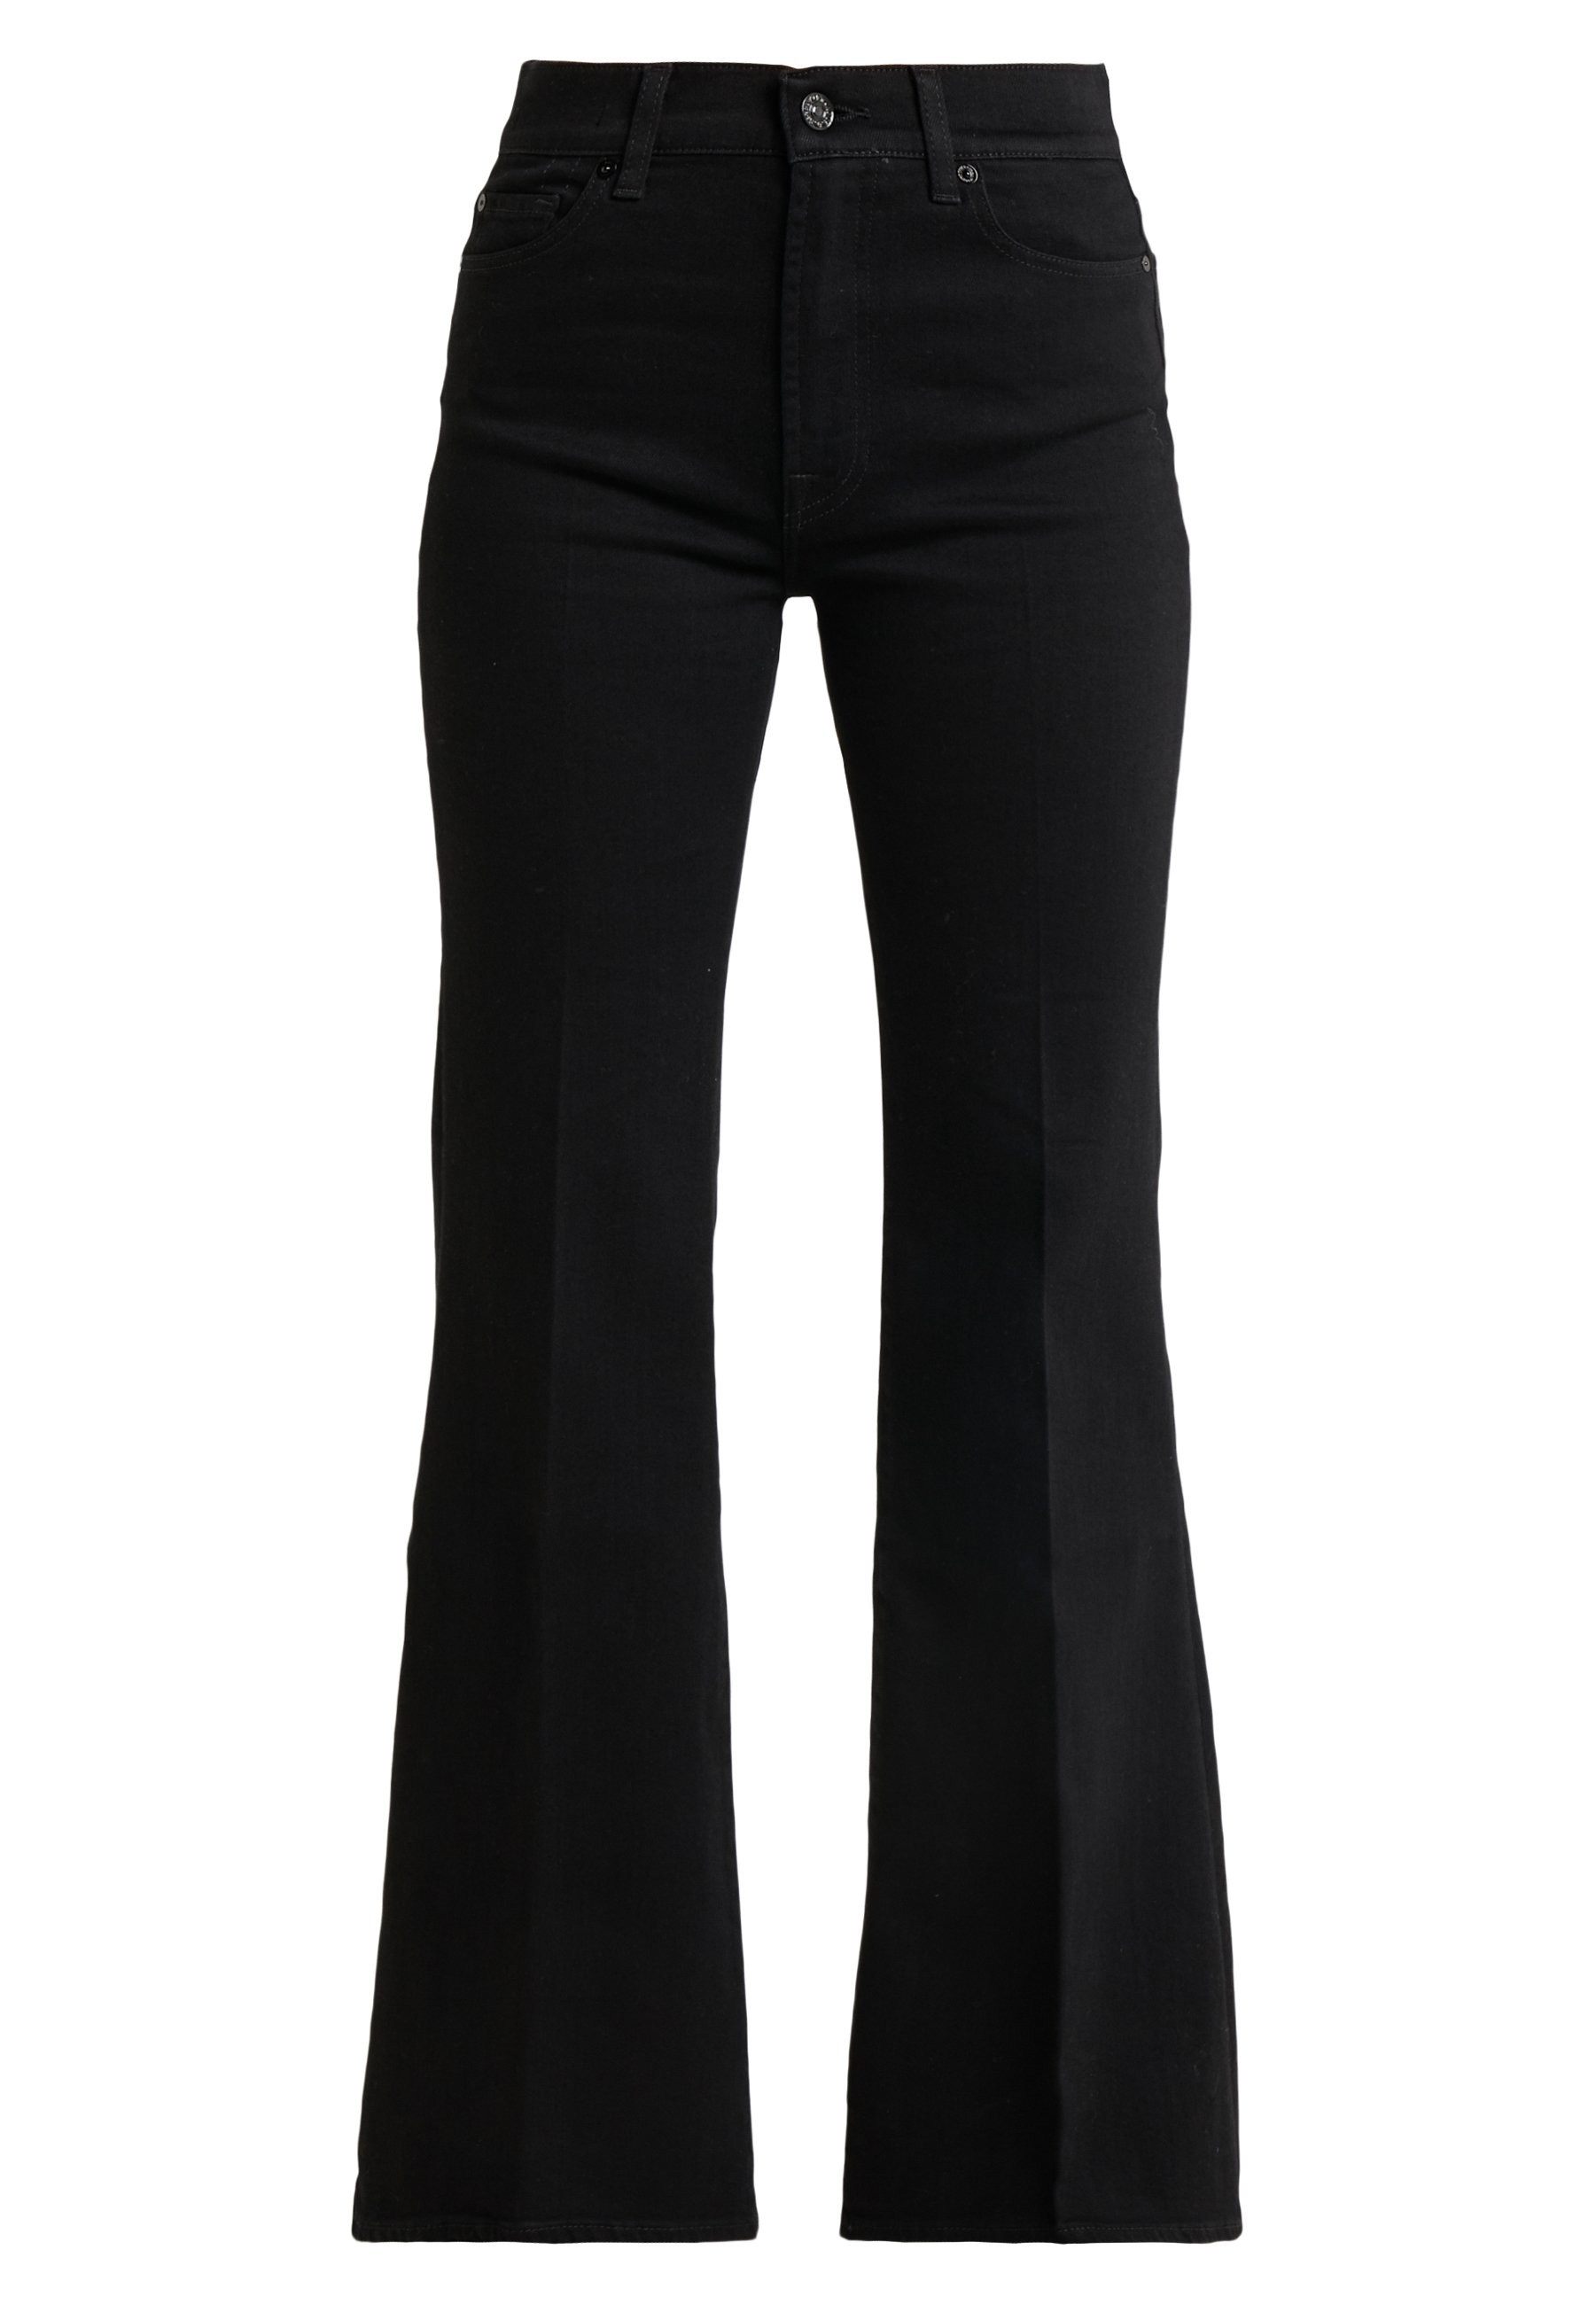 7 For All Mankind Flare - Flared Jeans Black